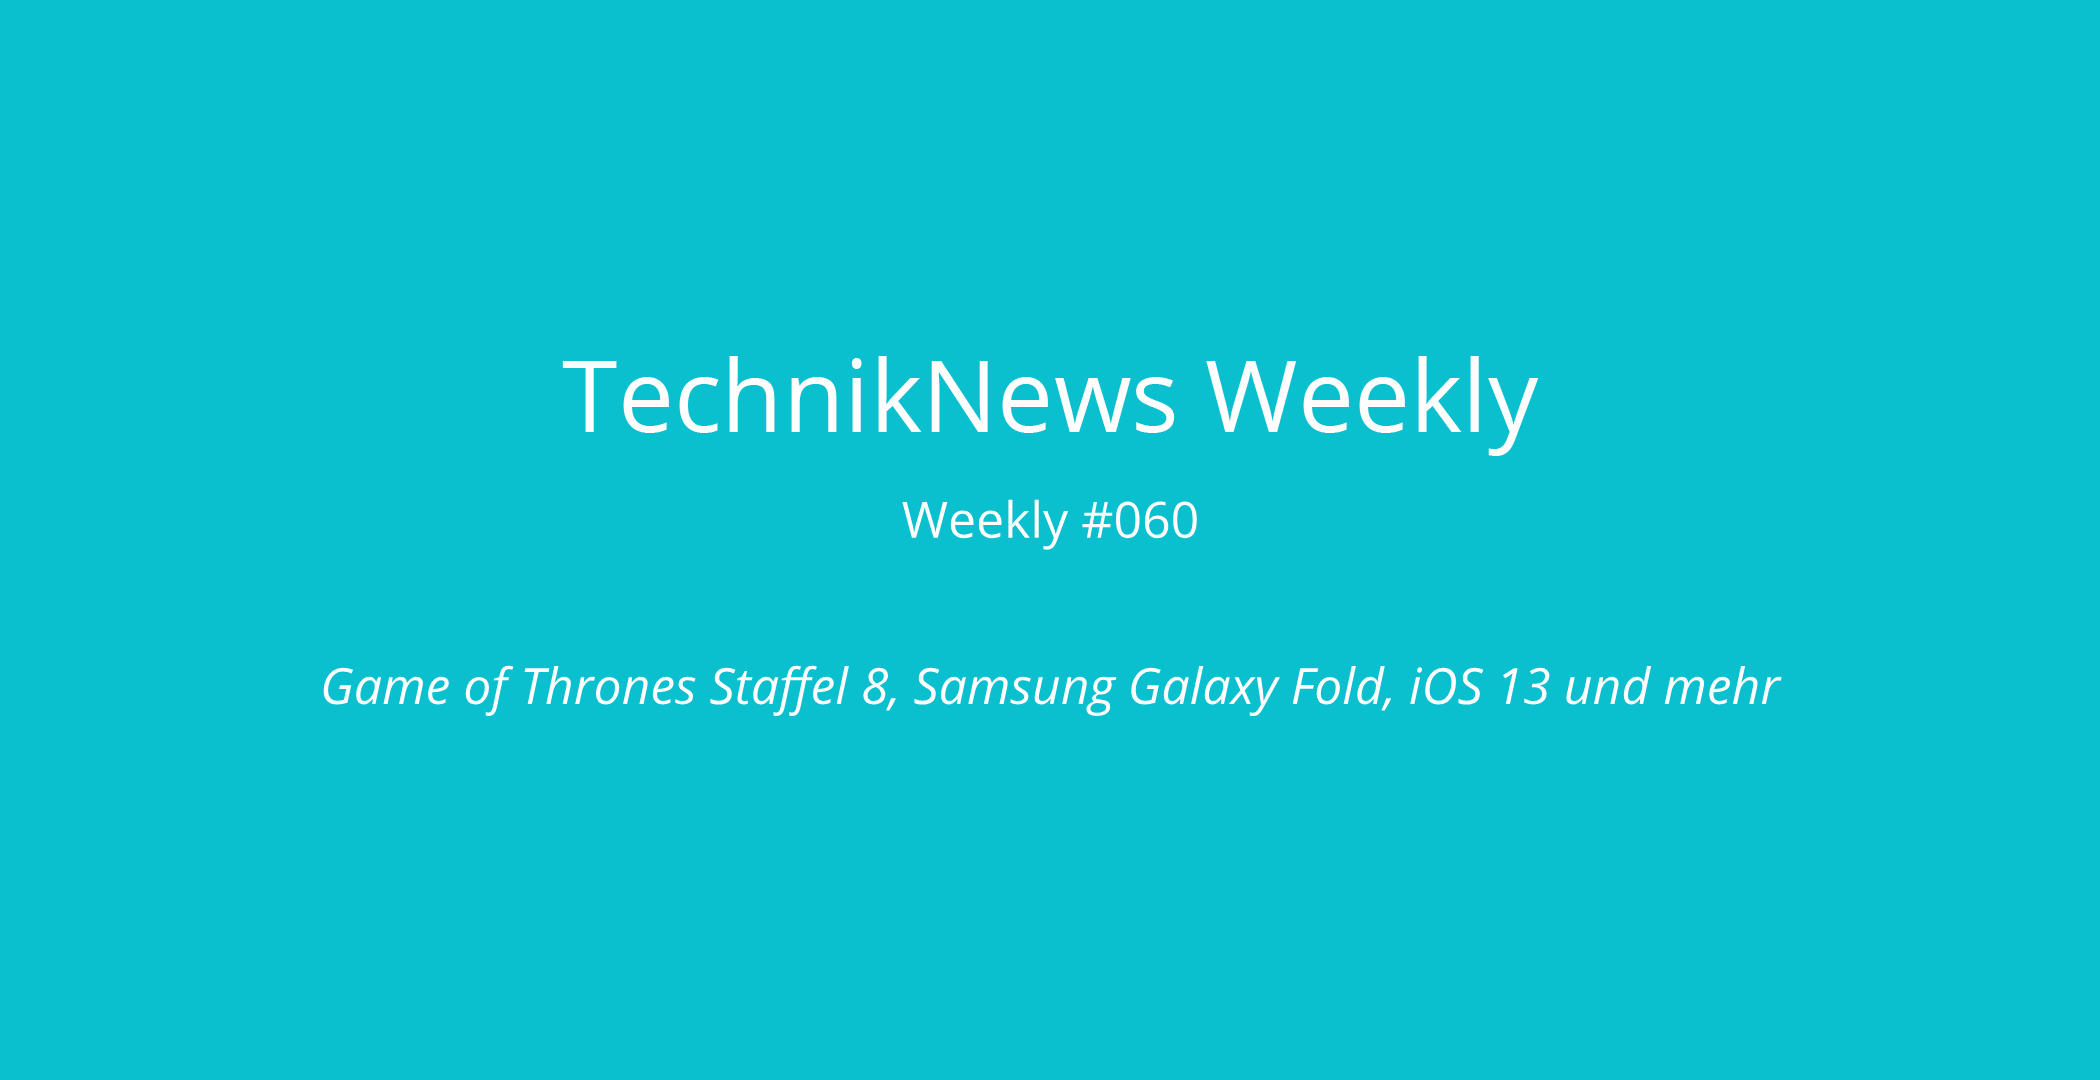 TechnikNews Weekly #060: Game of Thrones Staffel 8, Samsung Galaxy Fold, iOS 13 und mehr